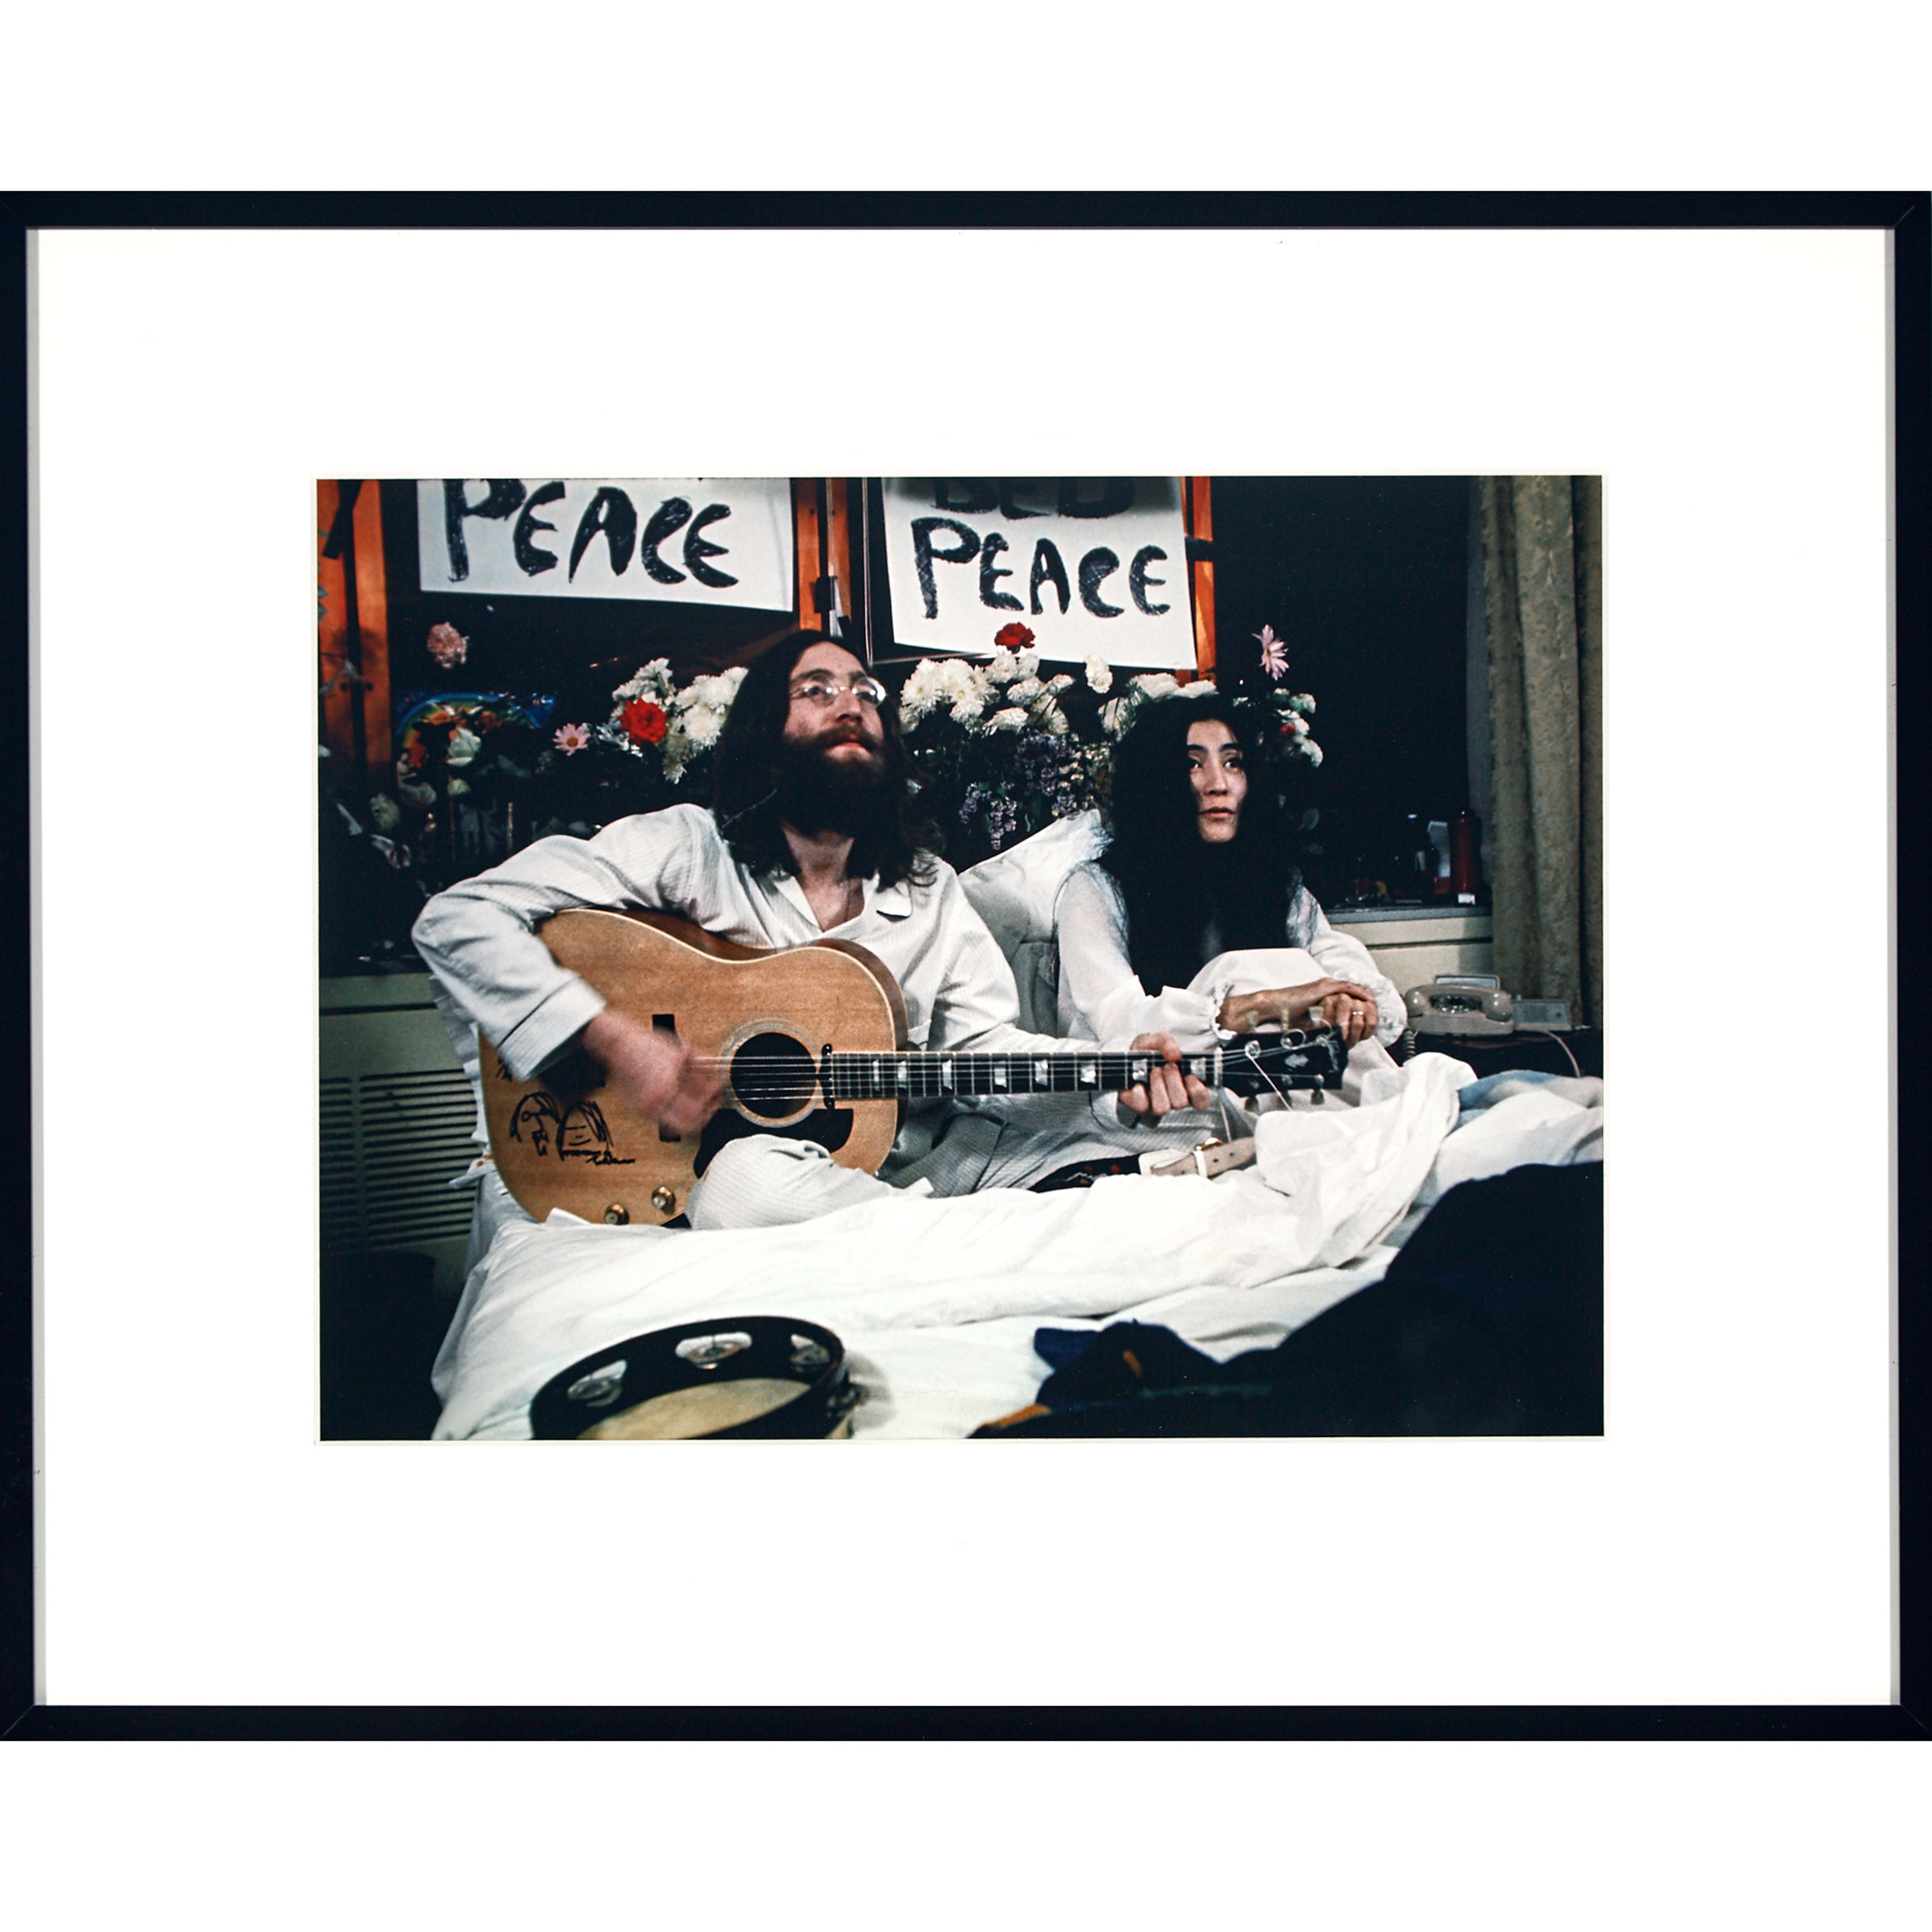 Deiter Gerry John Lennon Yoko Ono At Their Montreal Bed In For Peace 1969 Mutualart